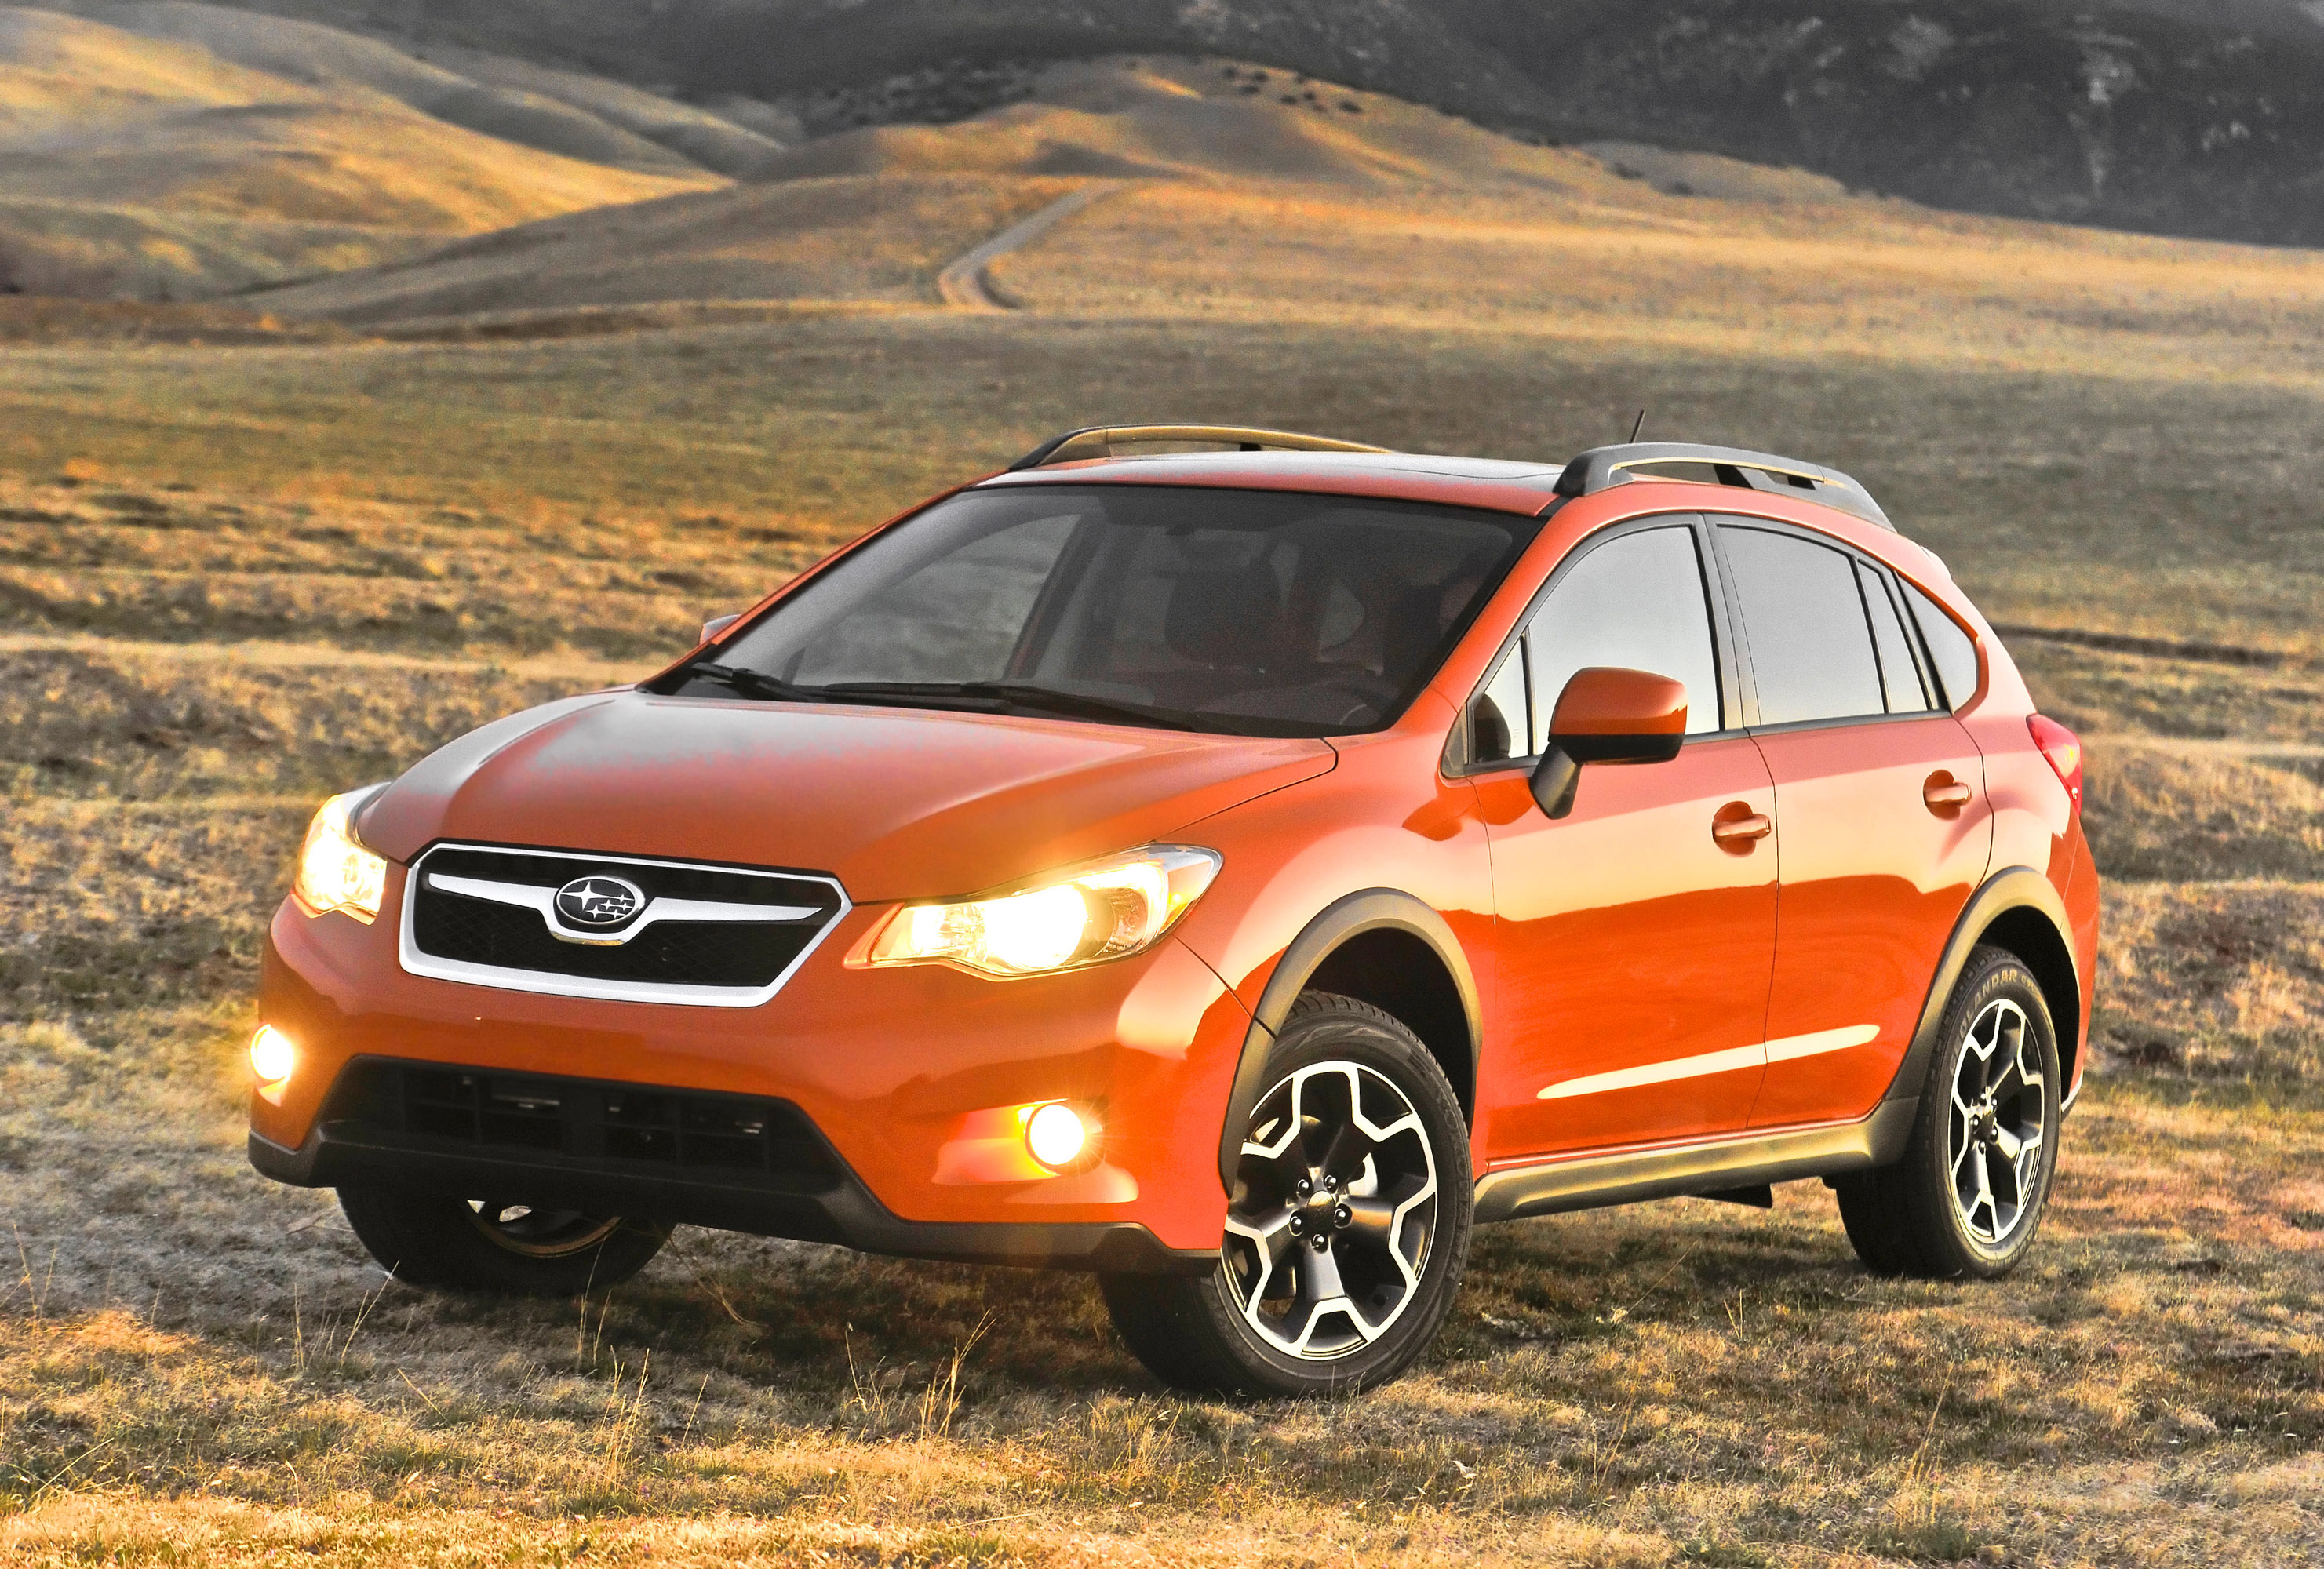 2013 Subaru Xv Crosstrek 2.0 I Limited >> 2013 Subaru XV Crosstrek - Pricing Announced